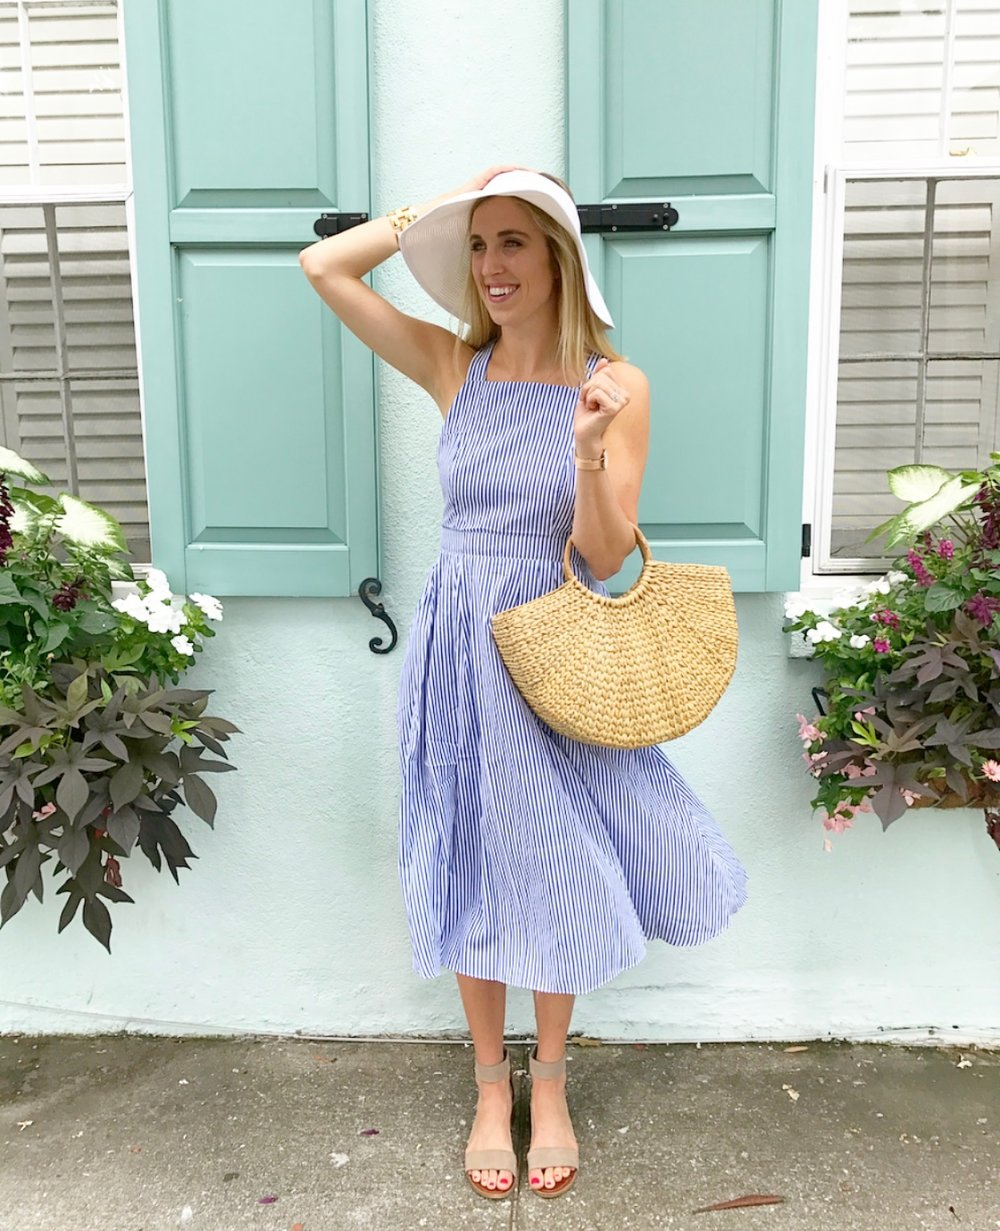 $21 Dress & Our Engagement Party — Southern Tailored